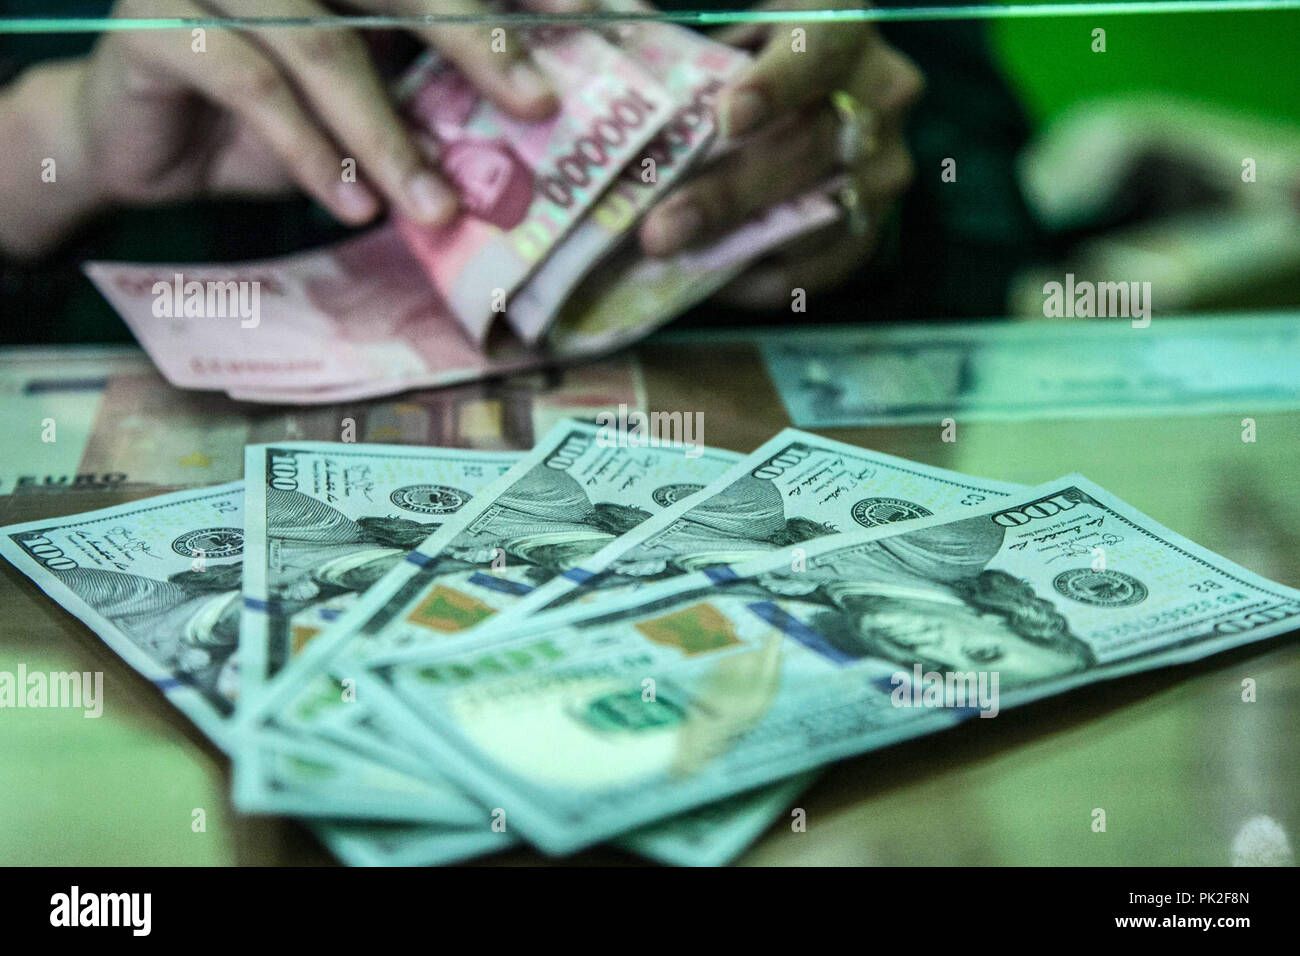 Medan, North Sumatra, Indonesia. 10th Sep, 2018. An employee counts Indonesian 100,000 rupiah banknotes as a bundle of U.S. one-hundred dollar banknotes sits on a counter at a currency exchange store in Medan on Sept 10, 2018, Indonesia. As Aug. 15's policy decision approaches, Bank Indonesia finds itself under pressure to raise the benchmark rate again even after increasing it by a combined 100 basis points since mid-May to stem a slide in the currency, where estimates that the Rupiah exchange rate will stabilize in the range of 14,835 rupiah per US dollar on today. (Credit Image: © Iv Stock Photo